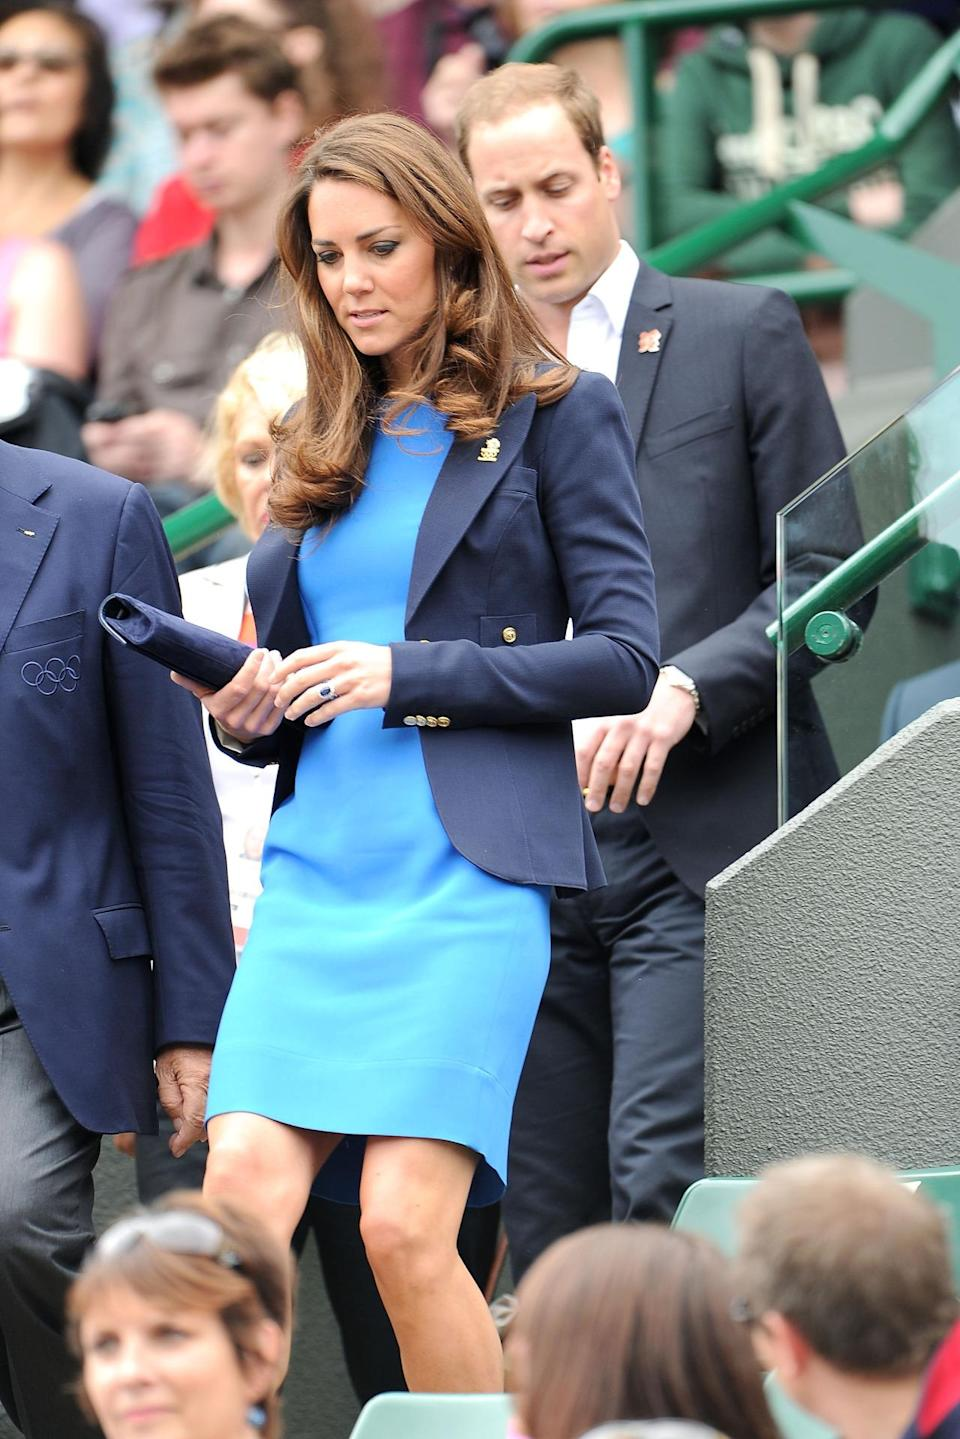 <p>Kate attended the Olympic tennis matches in a blue Stella McCartney dress, a suede Russell & Bromley clutch and a navy blazer from Smythe.</p><p><i>[Photo: Getty]</i></p>